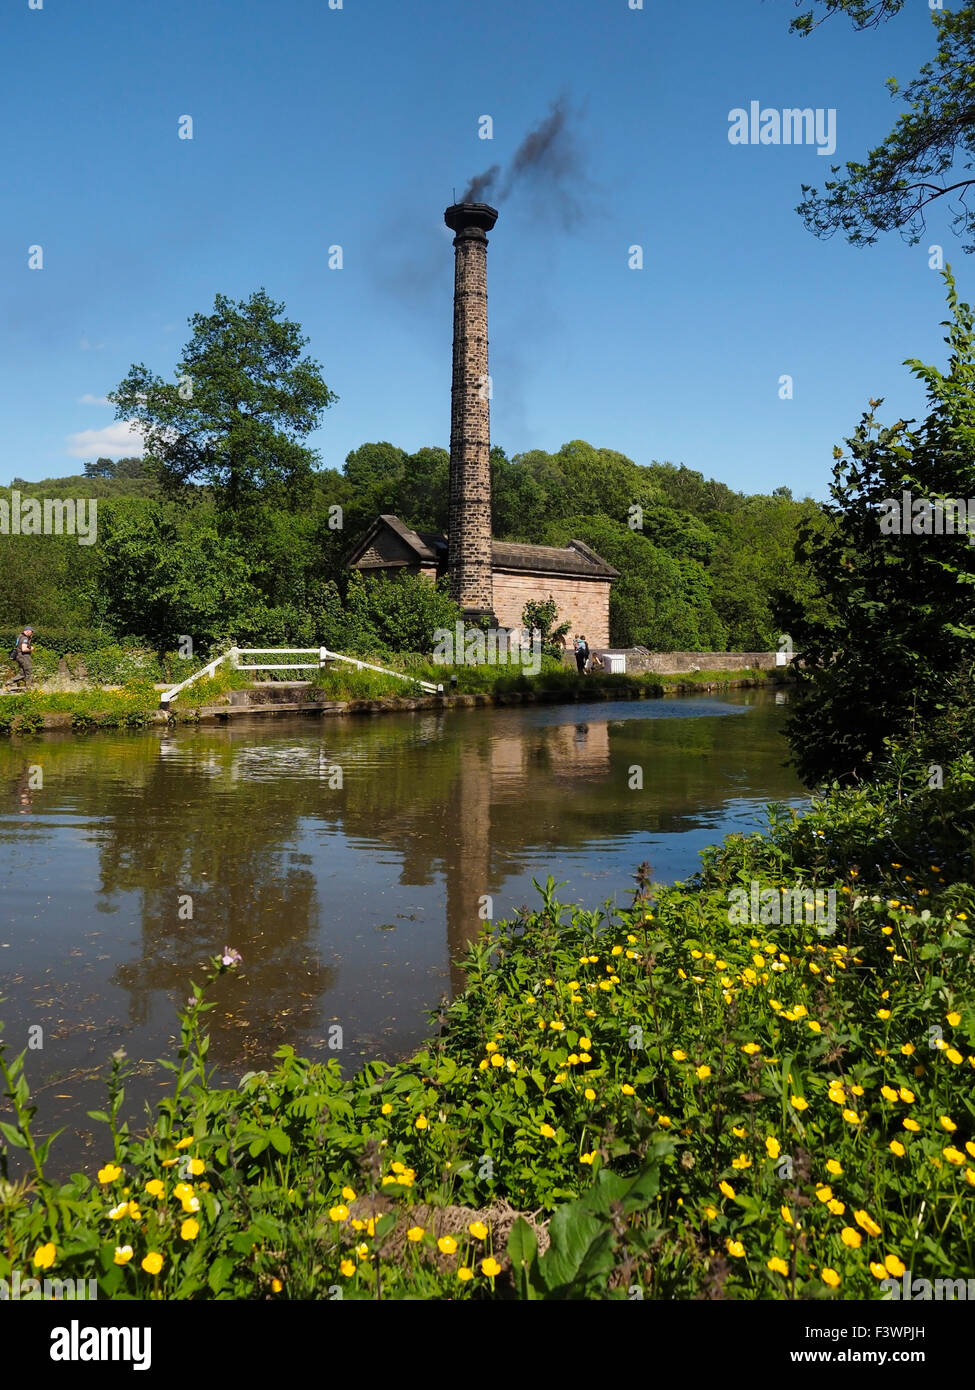 Leawood pump house on the Cromford canal in the Peak District Derbyshire England Stock Photo